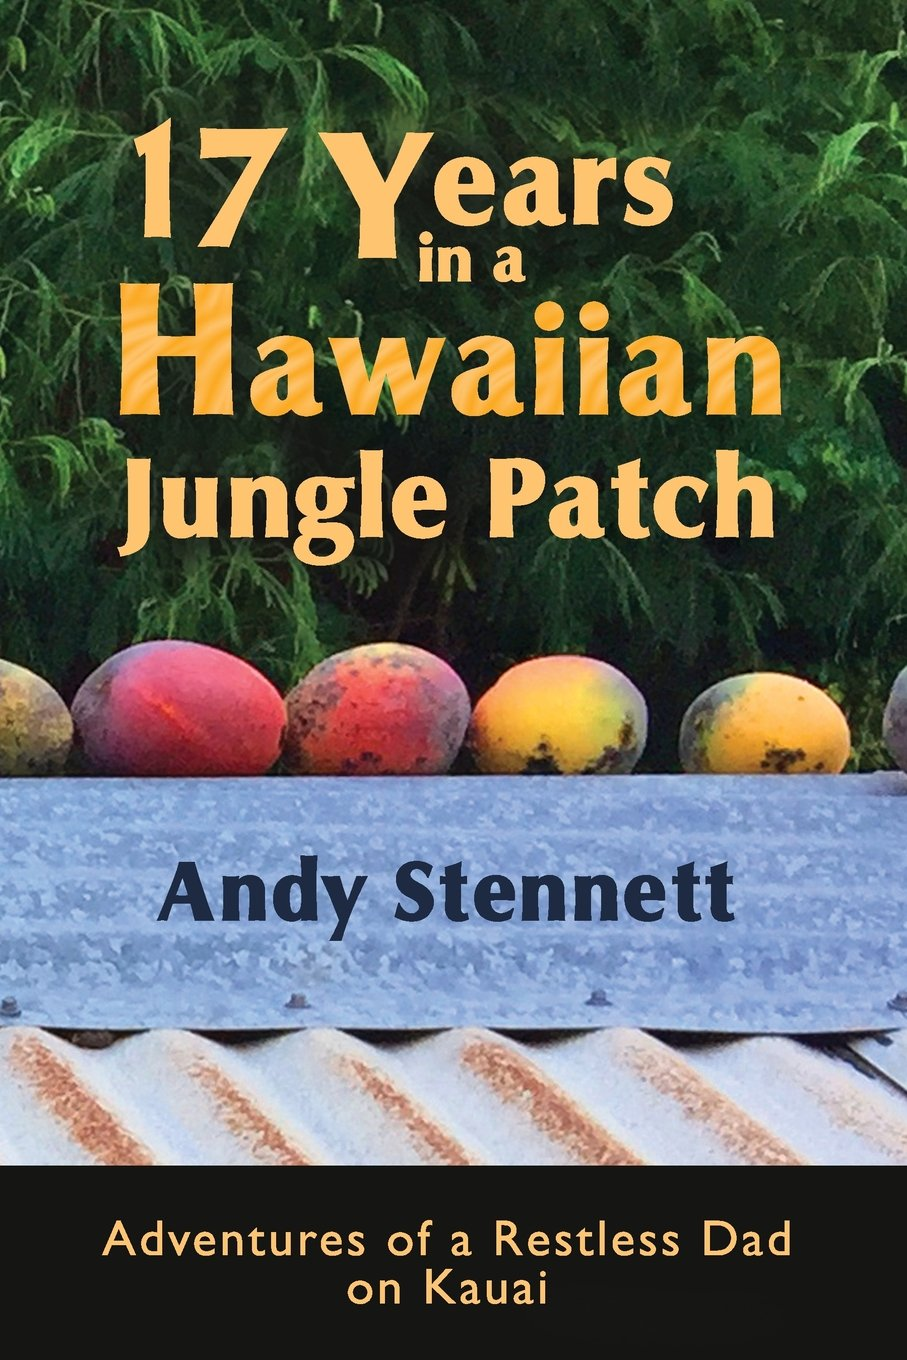 17 Years in a Hawaiian Jungle Patch: Adventures of a Restless Dad on Kauai pdf